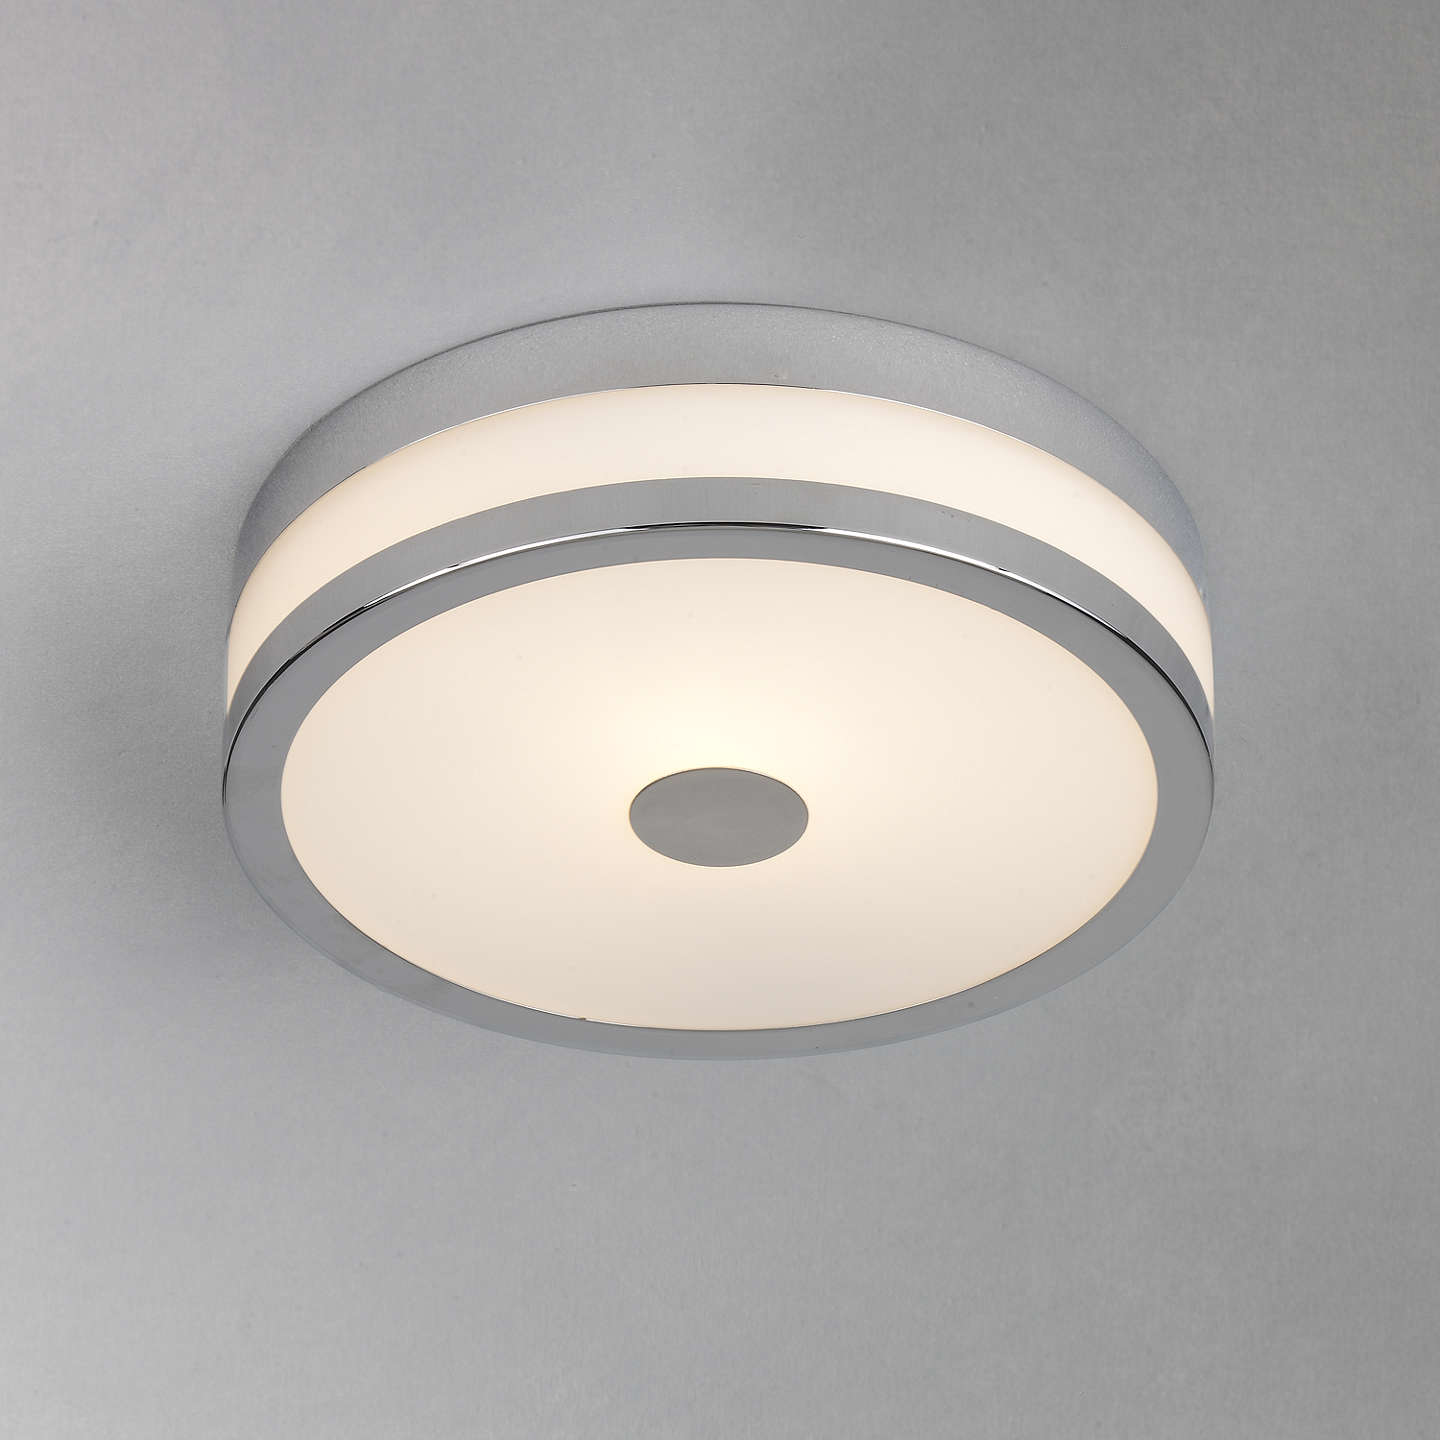 John lewis shiko bathroom ceiling light at john lewis buyjohn lewis shiko bathroom ceiling light online at johnlewis mozeypictures